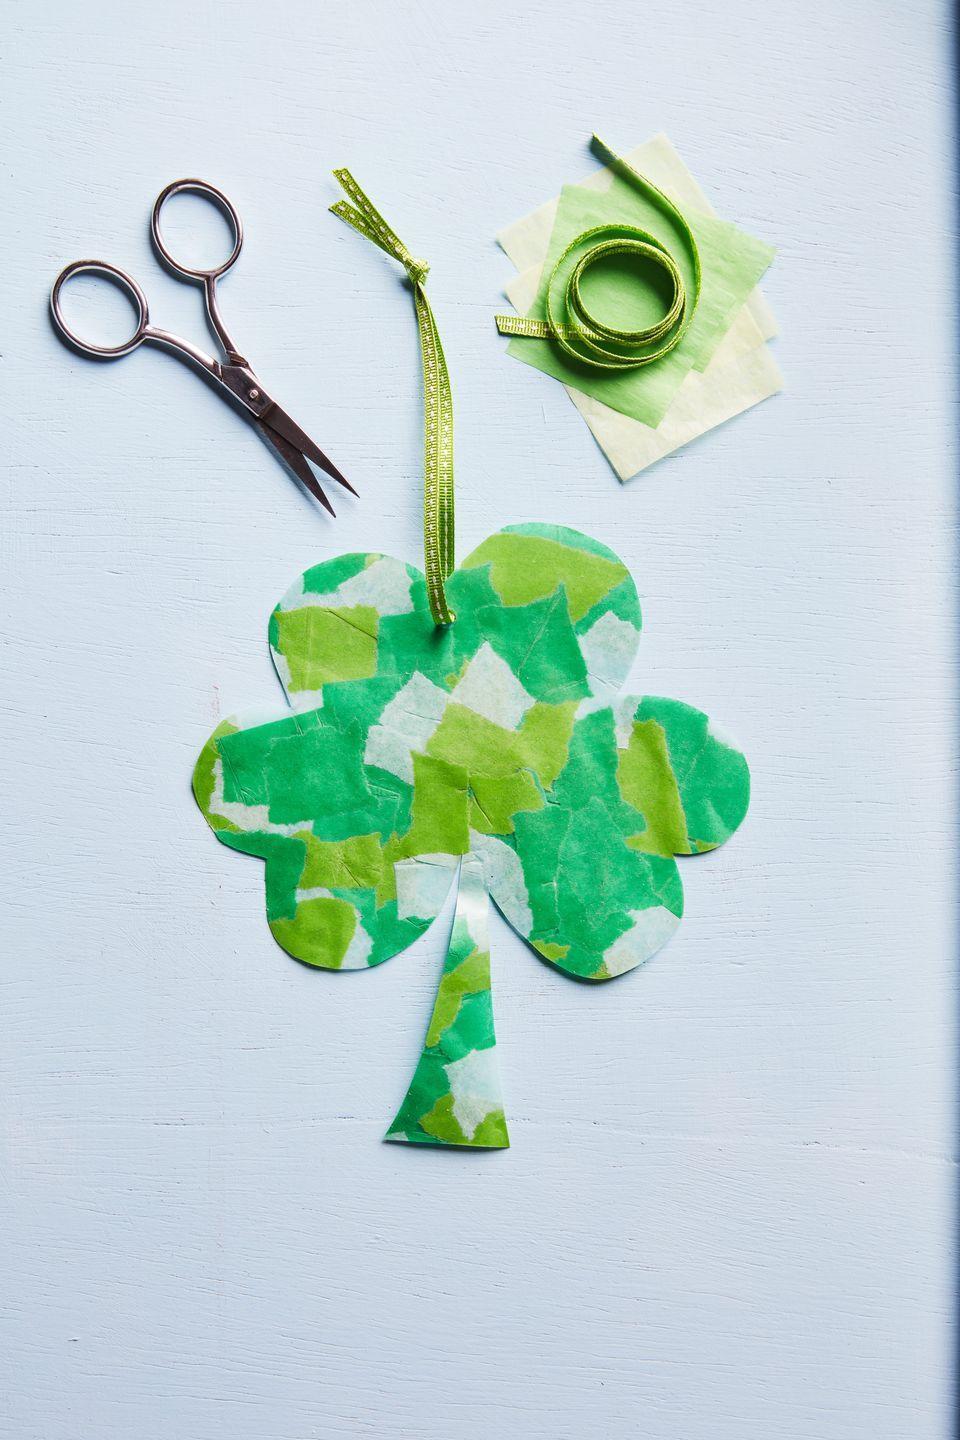 """<p>This sweet four-leaf clover ornament will look equally cute hanging from a magnet on the fridge or on the front door. Make it as small or large as desired.<strong><br></strong></p><p><strong>To make:</strong> Tear light green, dark green, and white tissue paper into small pieces. Lay pieces in between self-sealing laminating pouches; seal. Cut out a four-leaf clover shape. Punch a small hole in the top of the clover with a small hole-punch. Thread ribbon through the hole and hang.</p><p><a class=""""link rapid-noclick-resp"""" href=""""https://www.amazon.com/Scotch-Self-Sealing-Laminating-LS854-25G-WM-LS854WC/dp/B00006HZ5F/ref=sr_1_3?tag=syn-yahoo-20&ascsubtag=%5Bartid%7C10050.g.4036%5Bsrc%7Cyahoo-us"""" rel=""""nofollow noopener"""" target=""""_blank"""" data-ylk=""""slk:SHOP LAMINATING SHEETS"""">SHOP LAMINATING SHEETS</a></p>"""